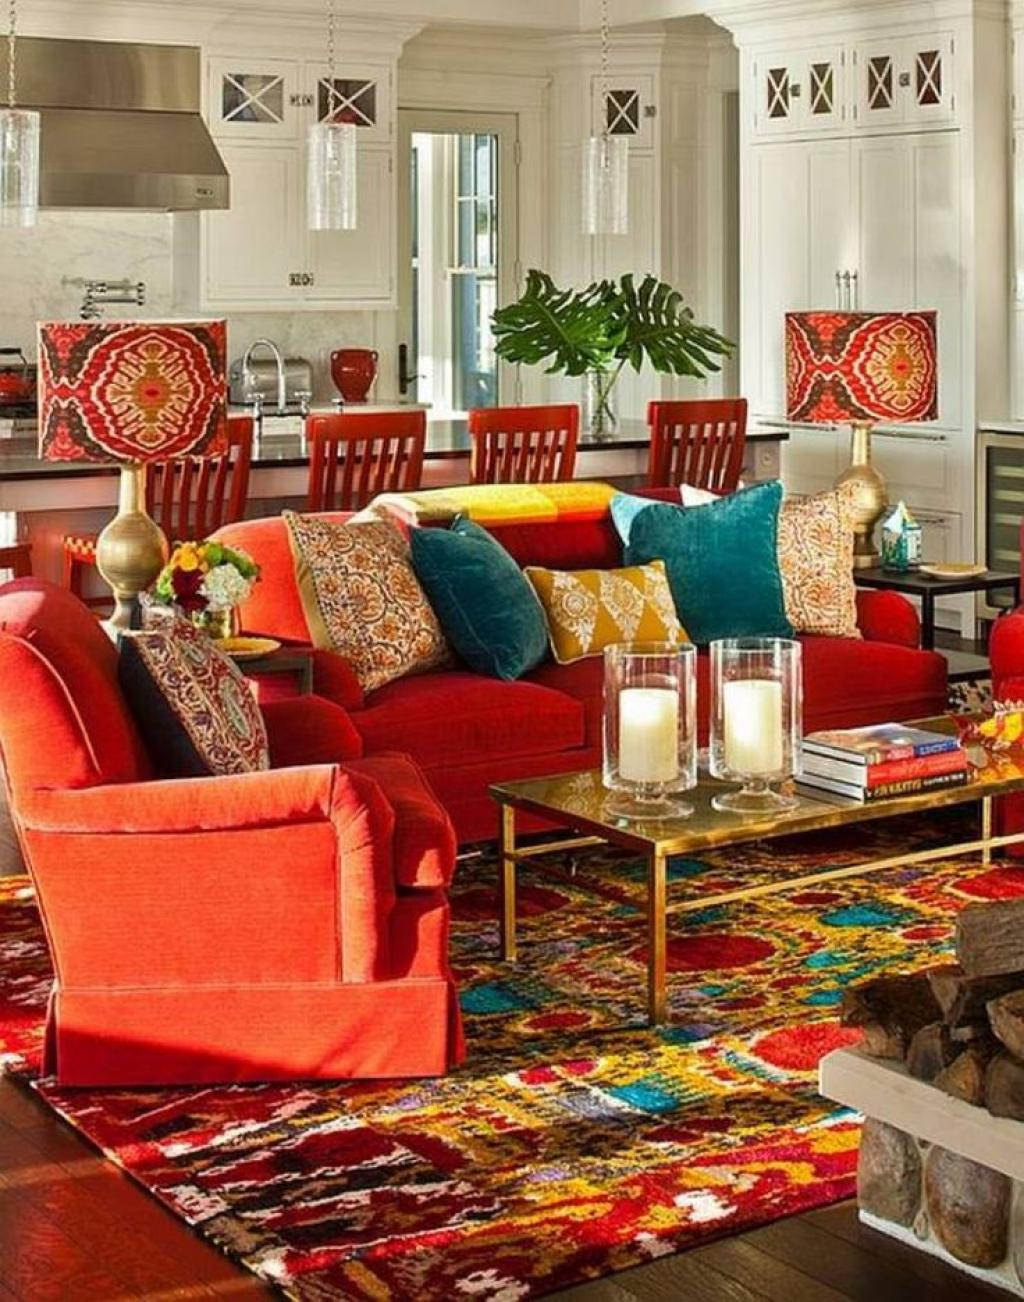 cheerful-bohemian-interior-design-ideasfor-living-room